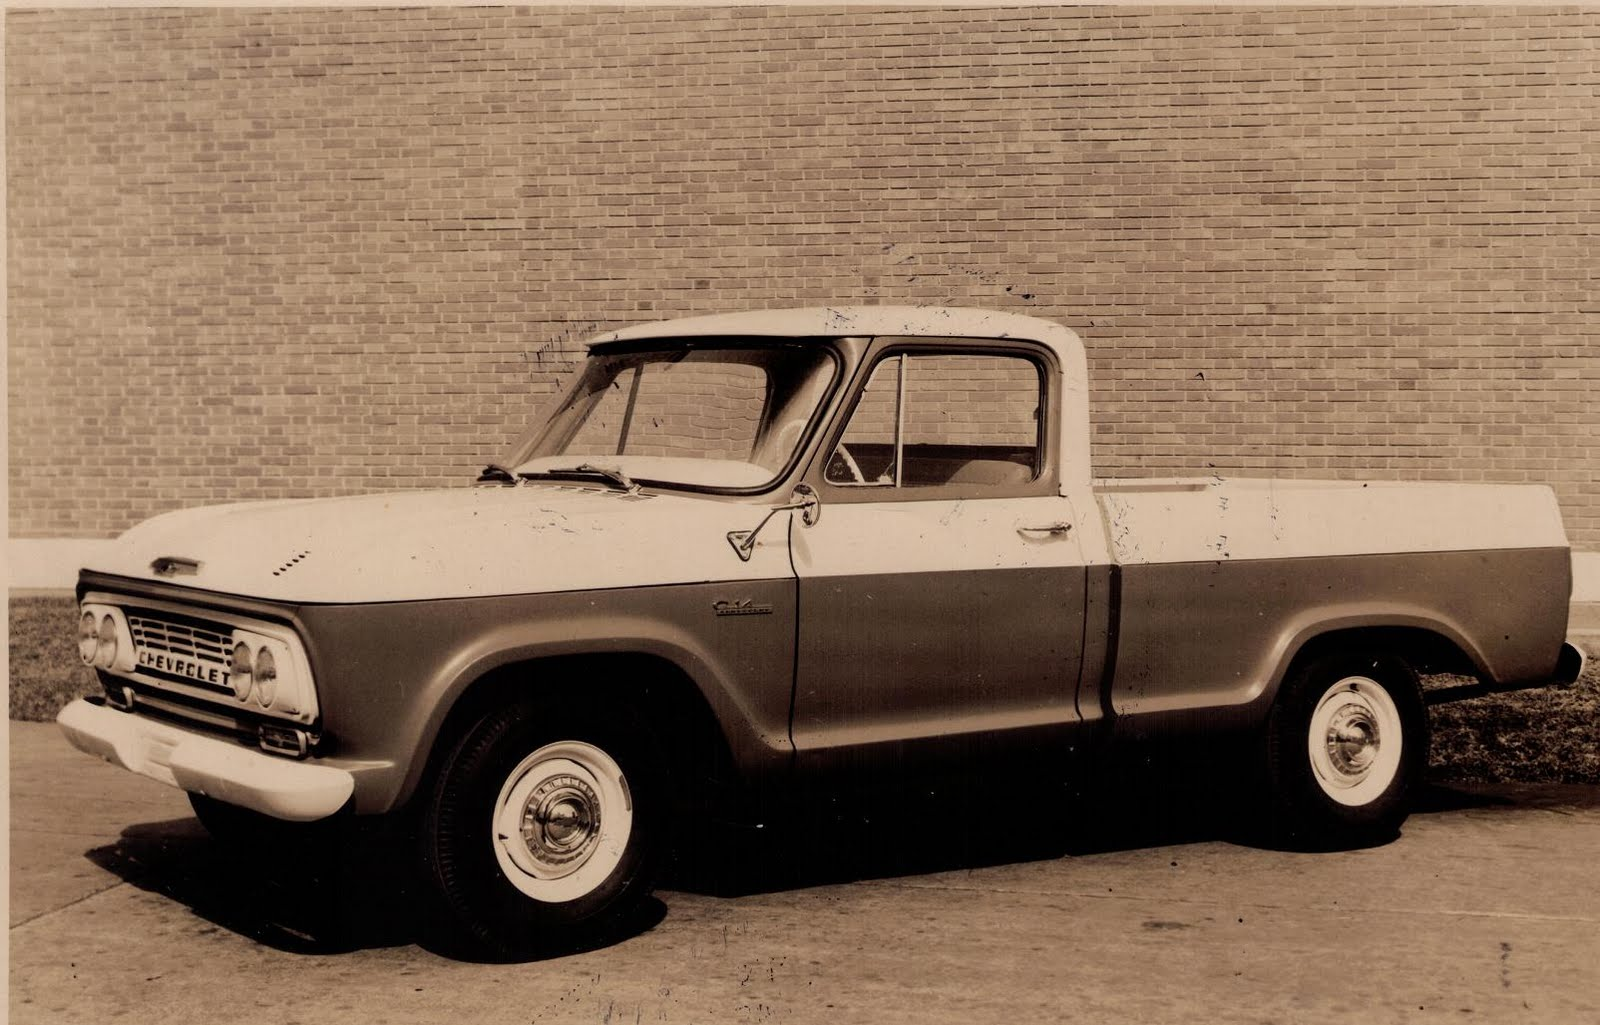 Gm pickup photo - 4